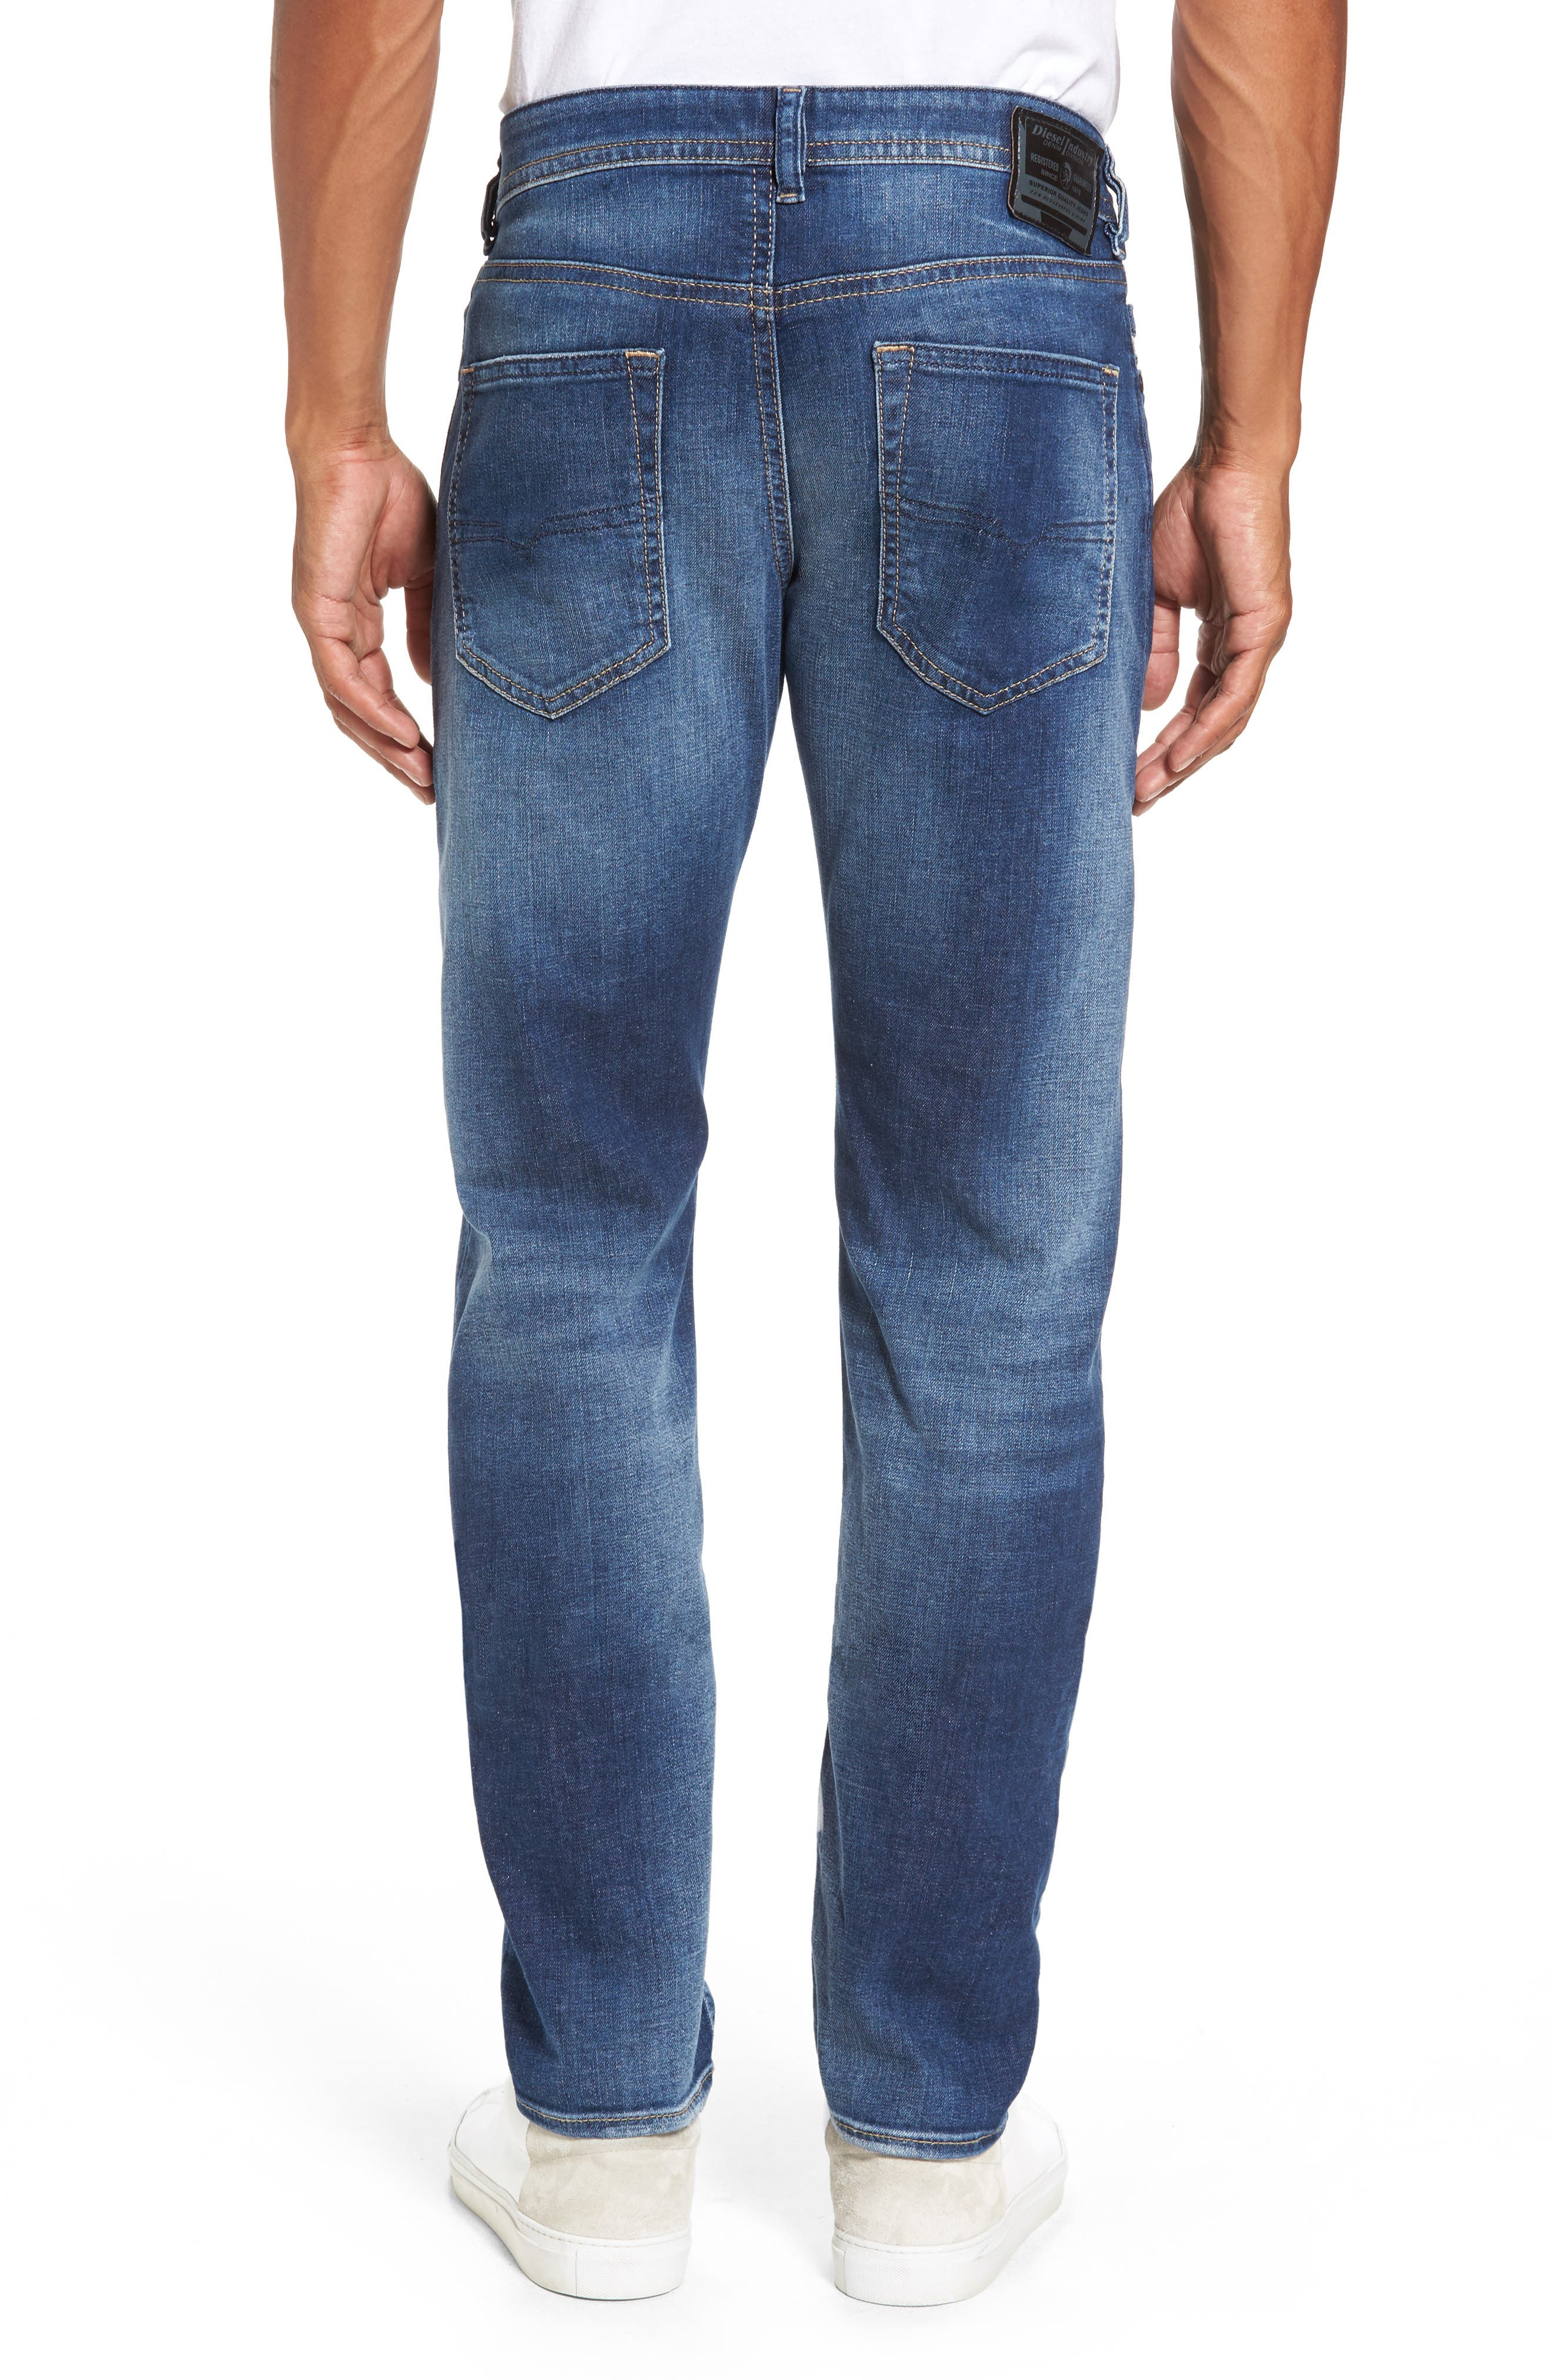 Buster Slim Straight Leg Jeans,                             Alternate thumbnail 2, color,                             084Gr